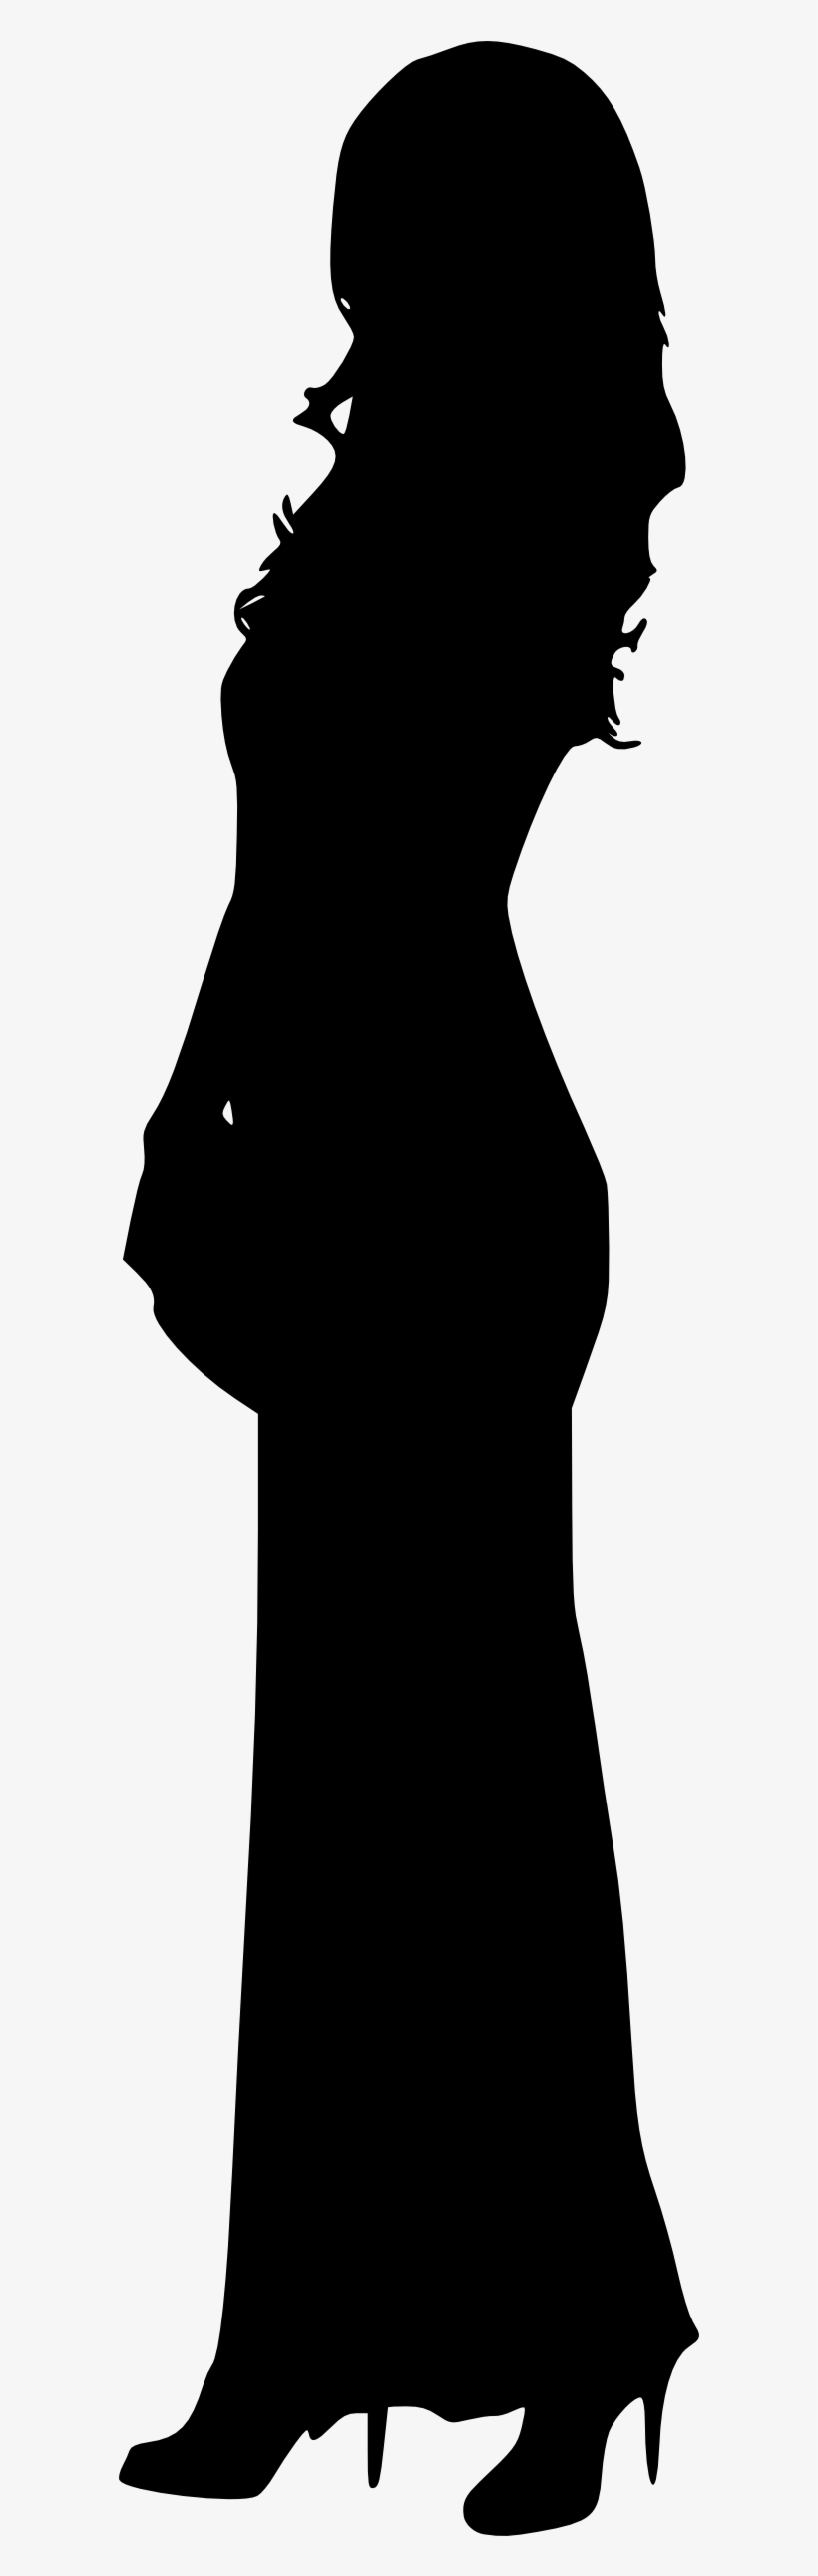 Free Png Woman Silhouette Png Images Transparent - Woman Silhouette Transparent Background, transparent png #178062